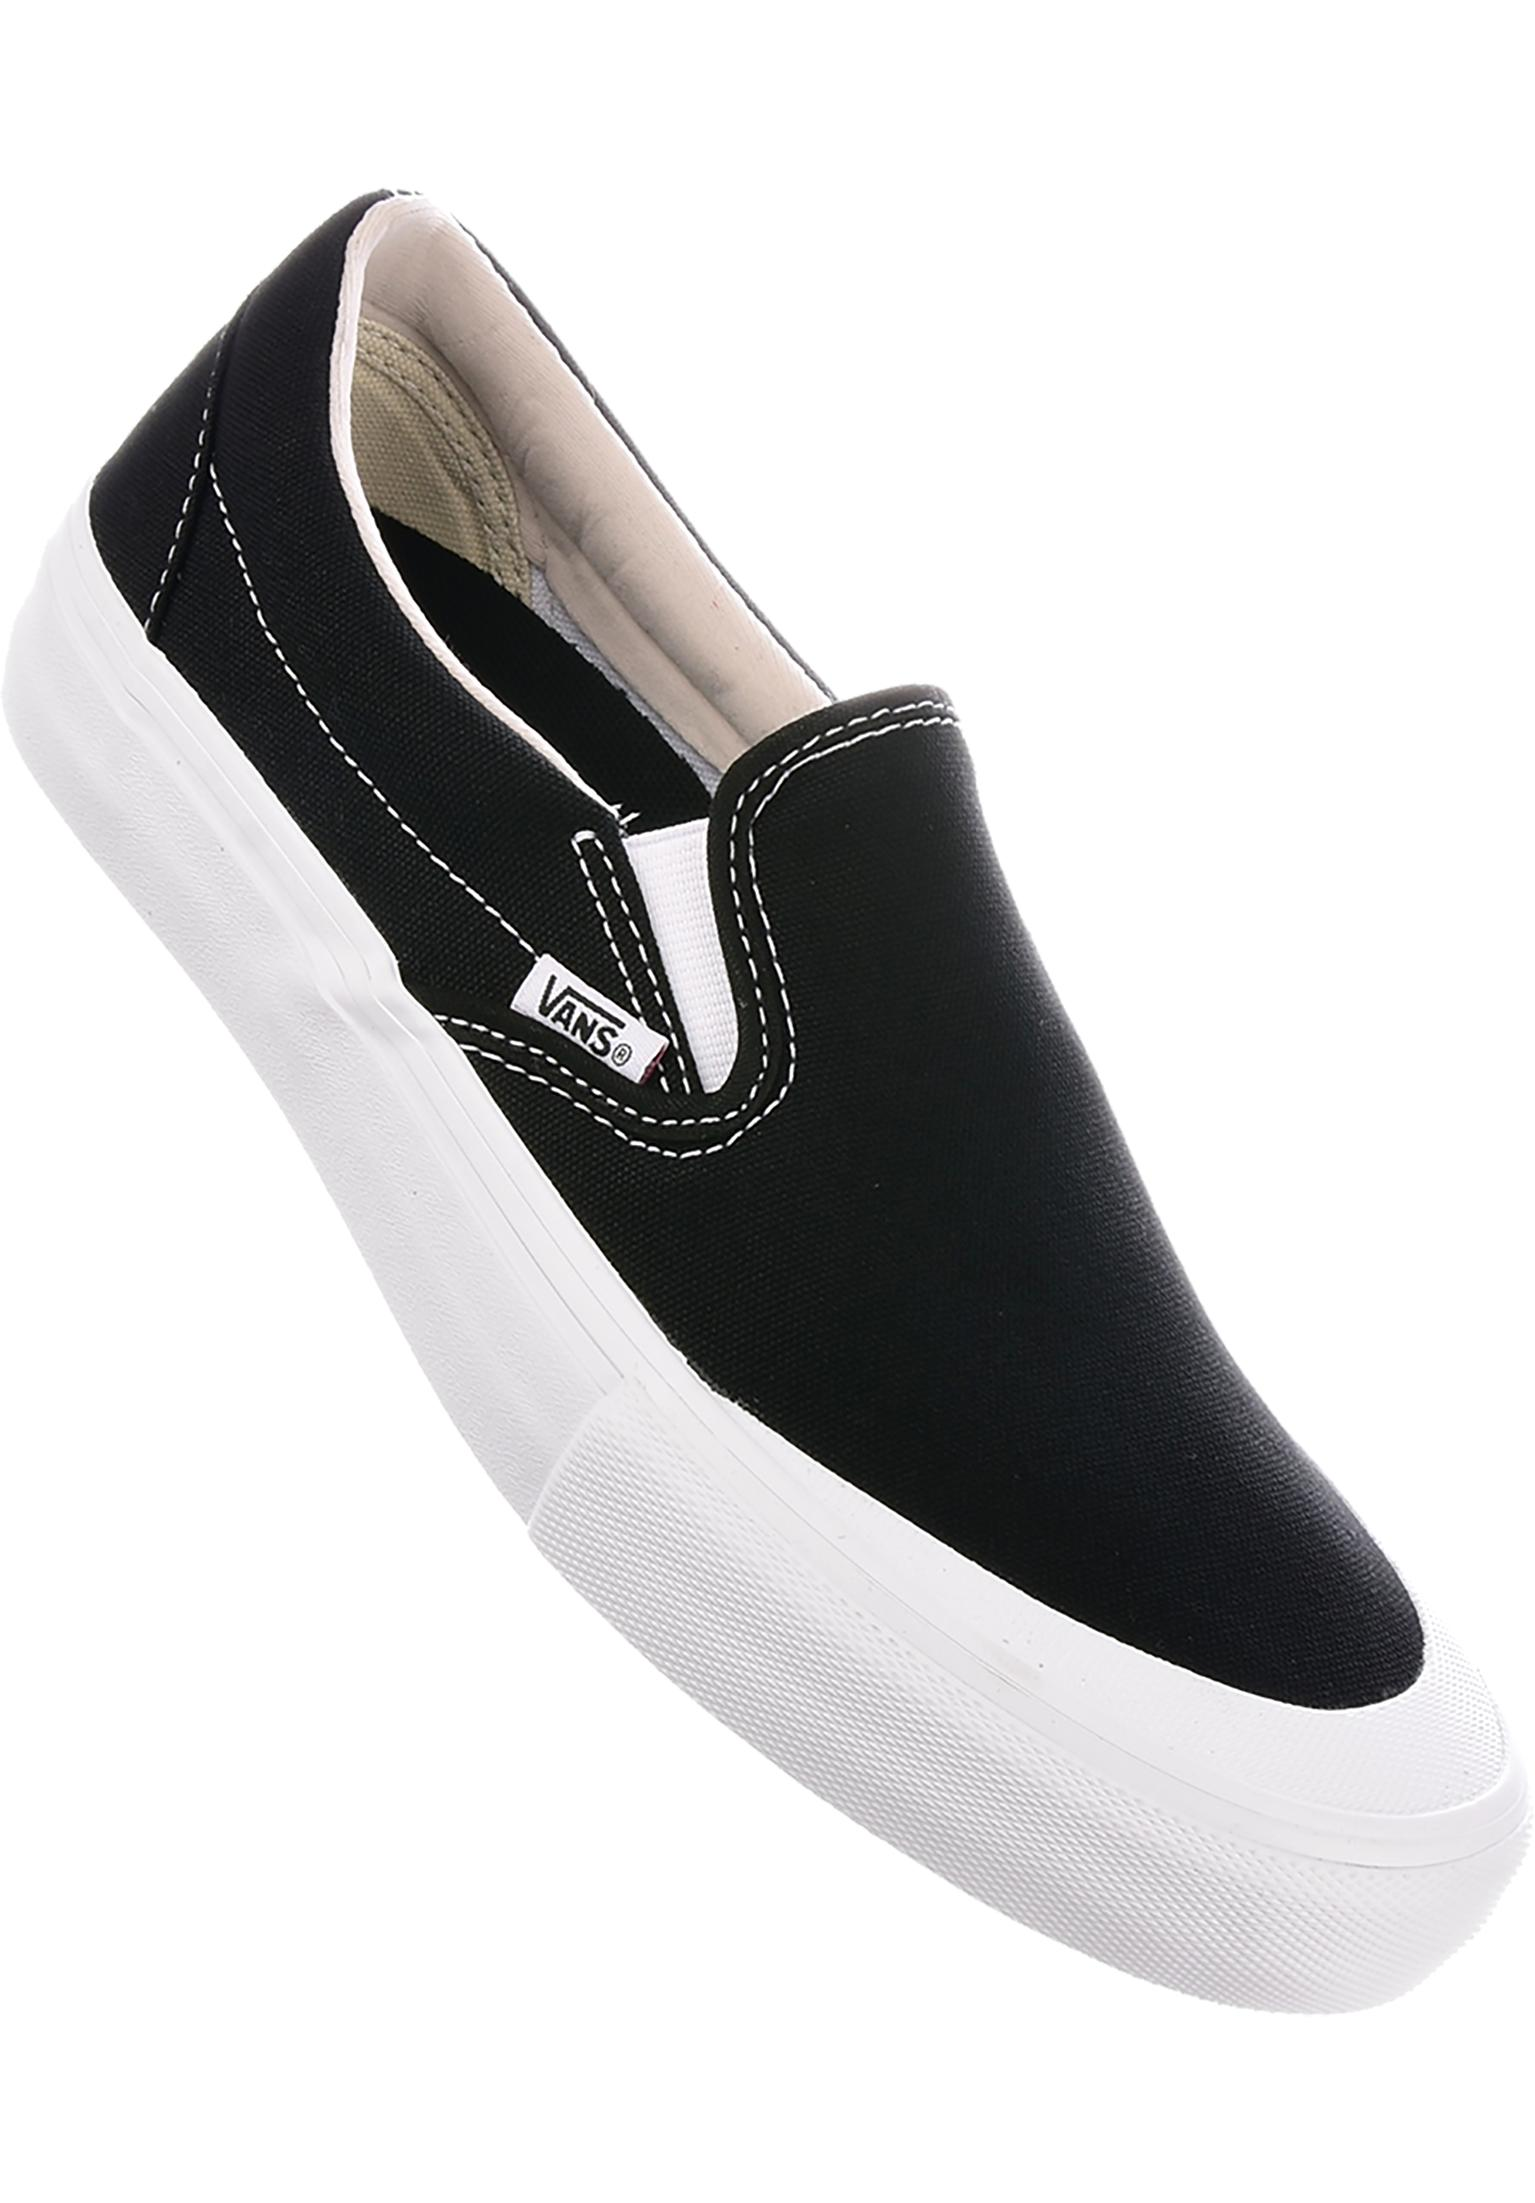 30e0ba22e82 Slip-On Pro Vans All Shoes in black-white-toecap for Men